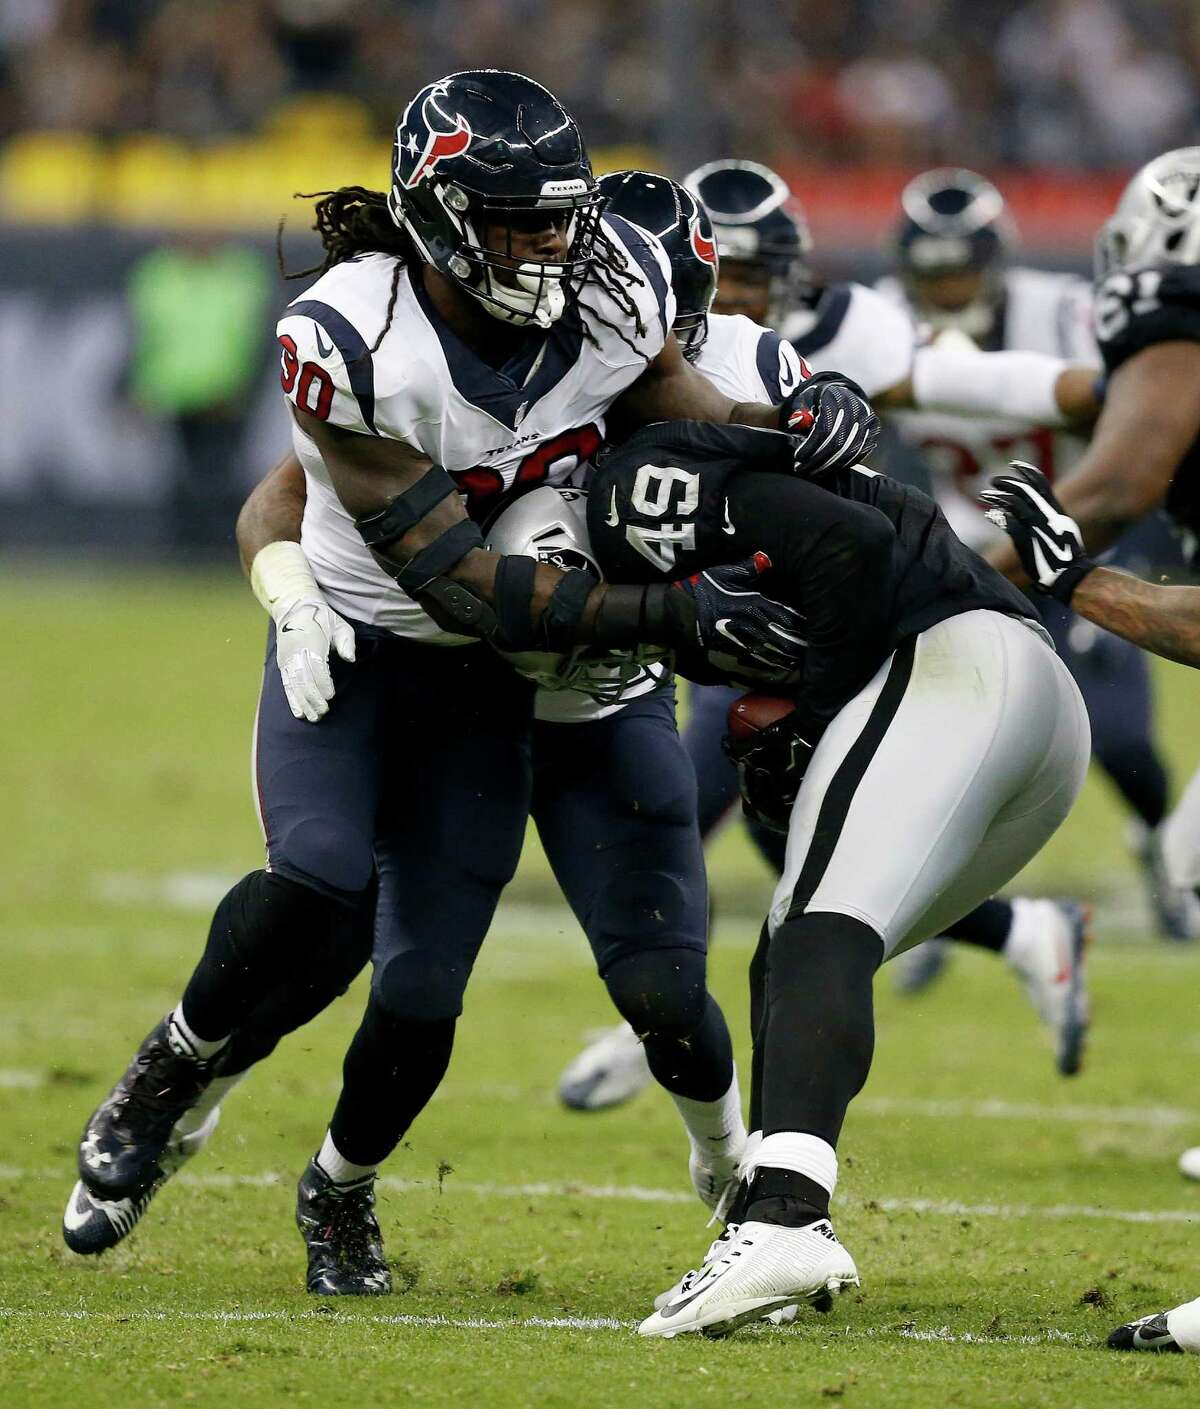 Houston Texans defensive end Jadeveon Clowney (90) wraps up Oakland Raiders fullback Jamize Olawale (49) during the second quarter of an NFL football game at Estadio Azteca on Monday, Nov. 21, 2016, in Mexico City. ( Brett Coomer / Houston Chronicle )